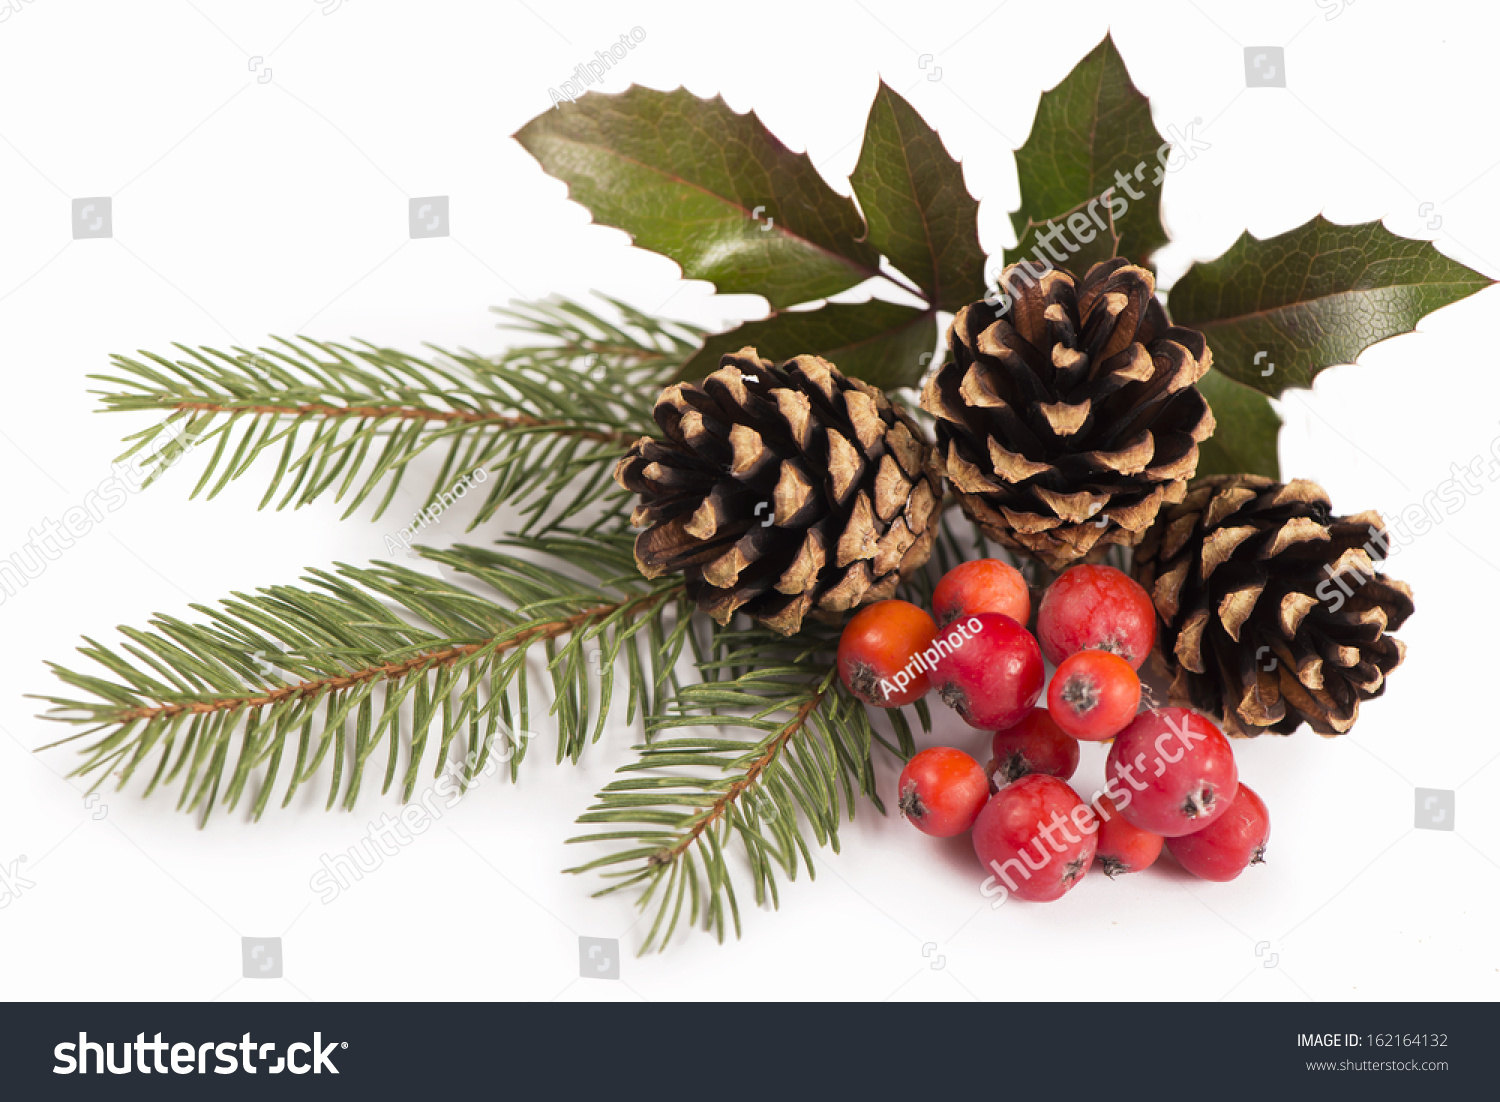 Branches Of Holly, Pine Cones, Mountain Ash Berries Stock